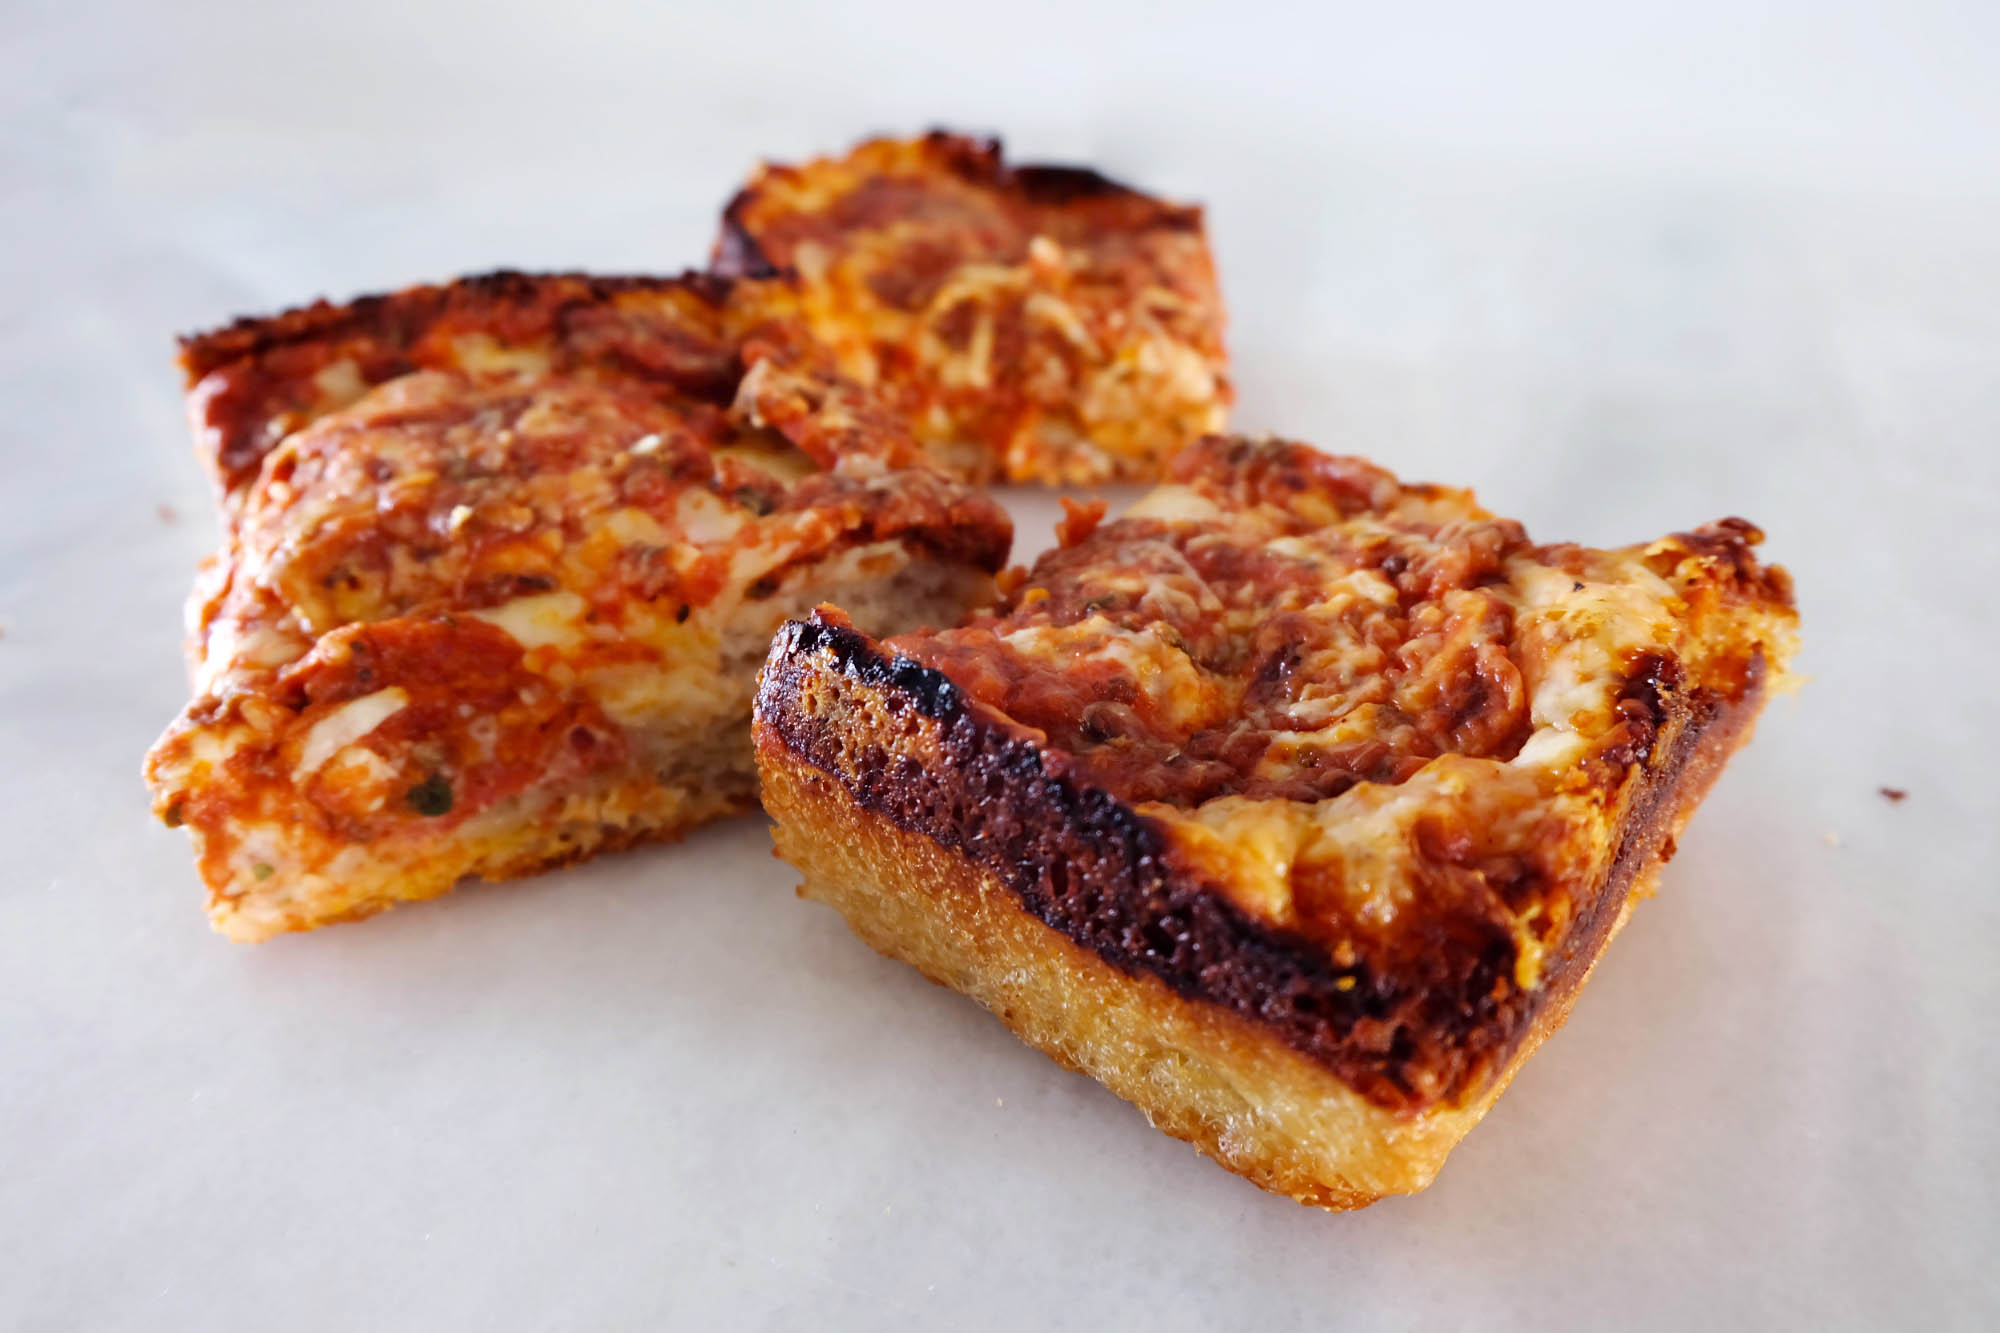 slices of pan pizza with burnt cheese edge